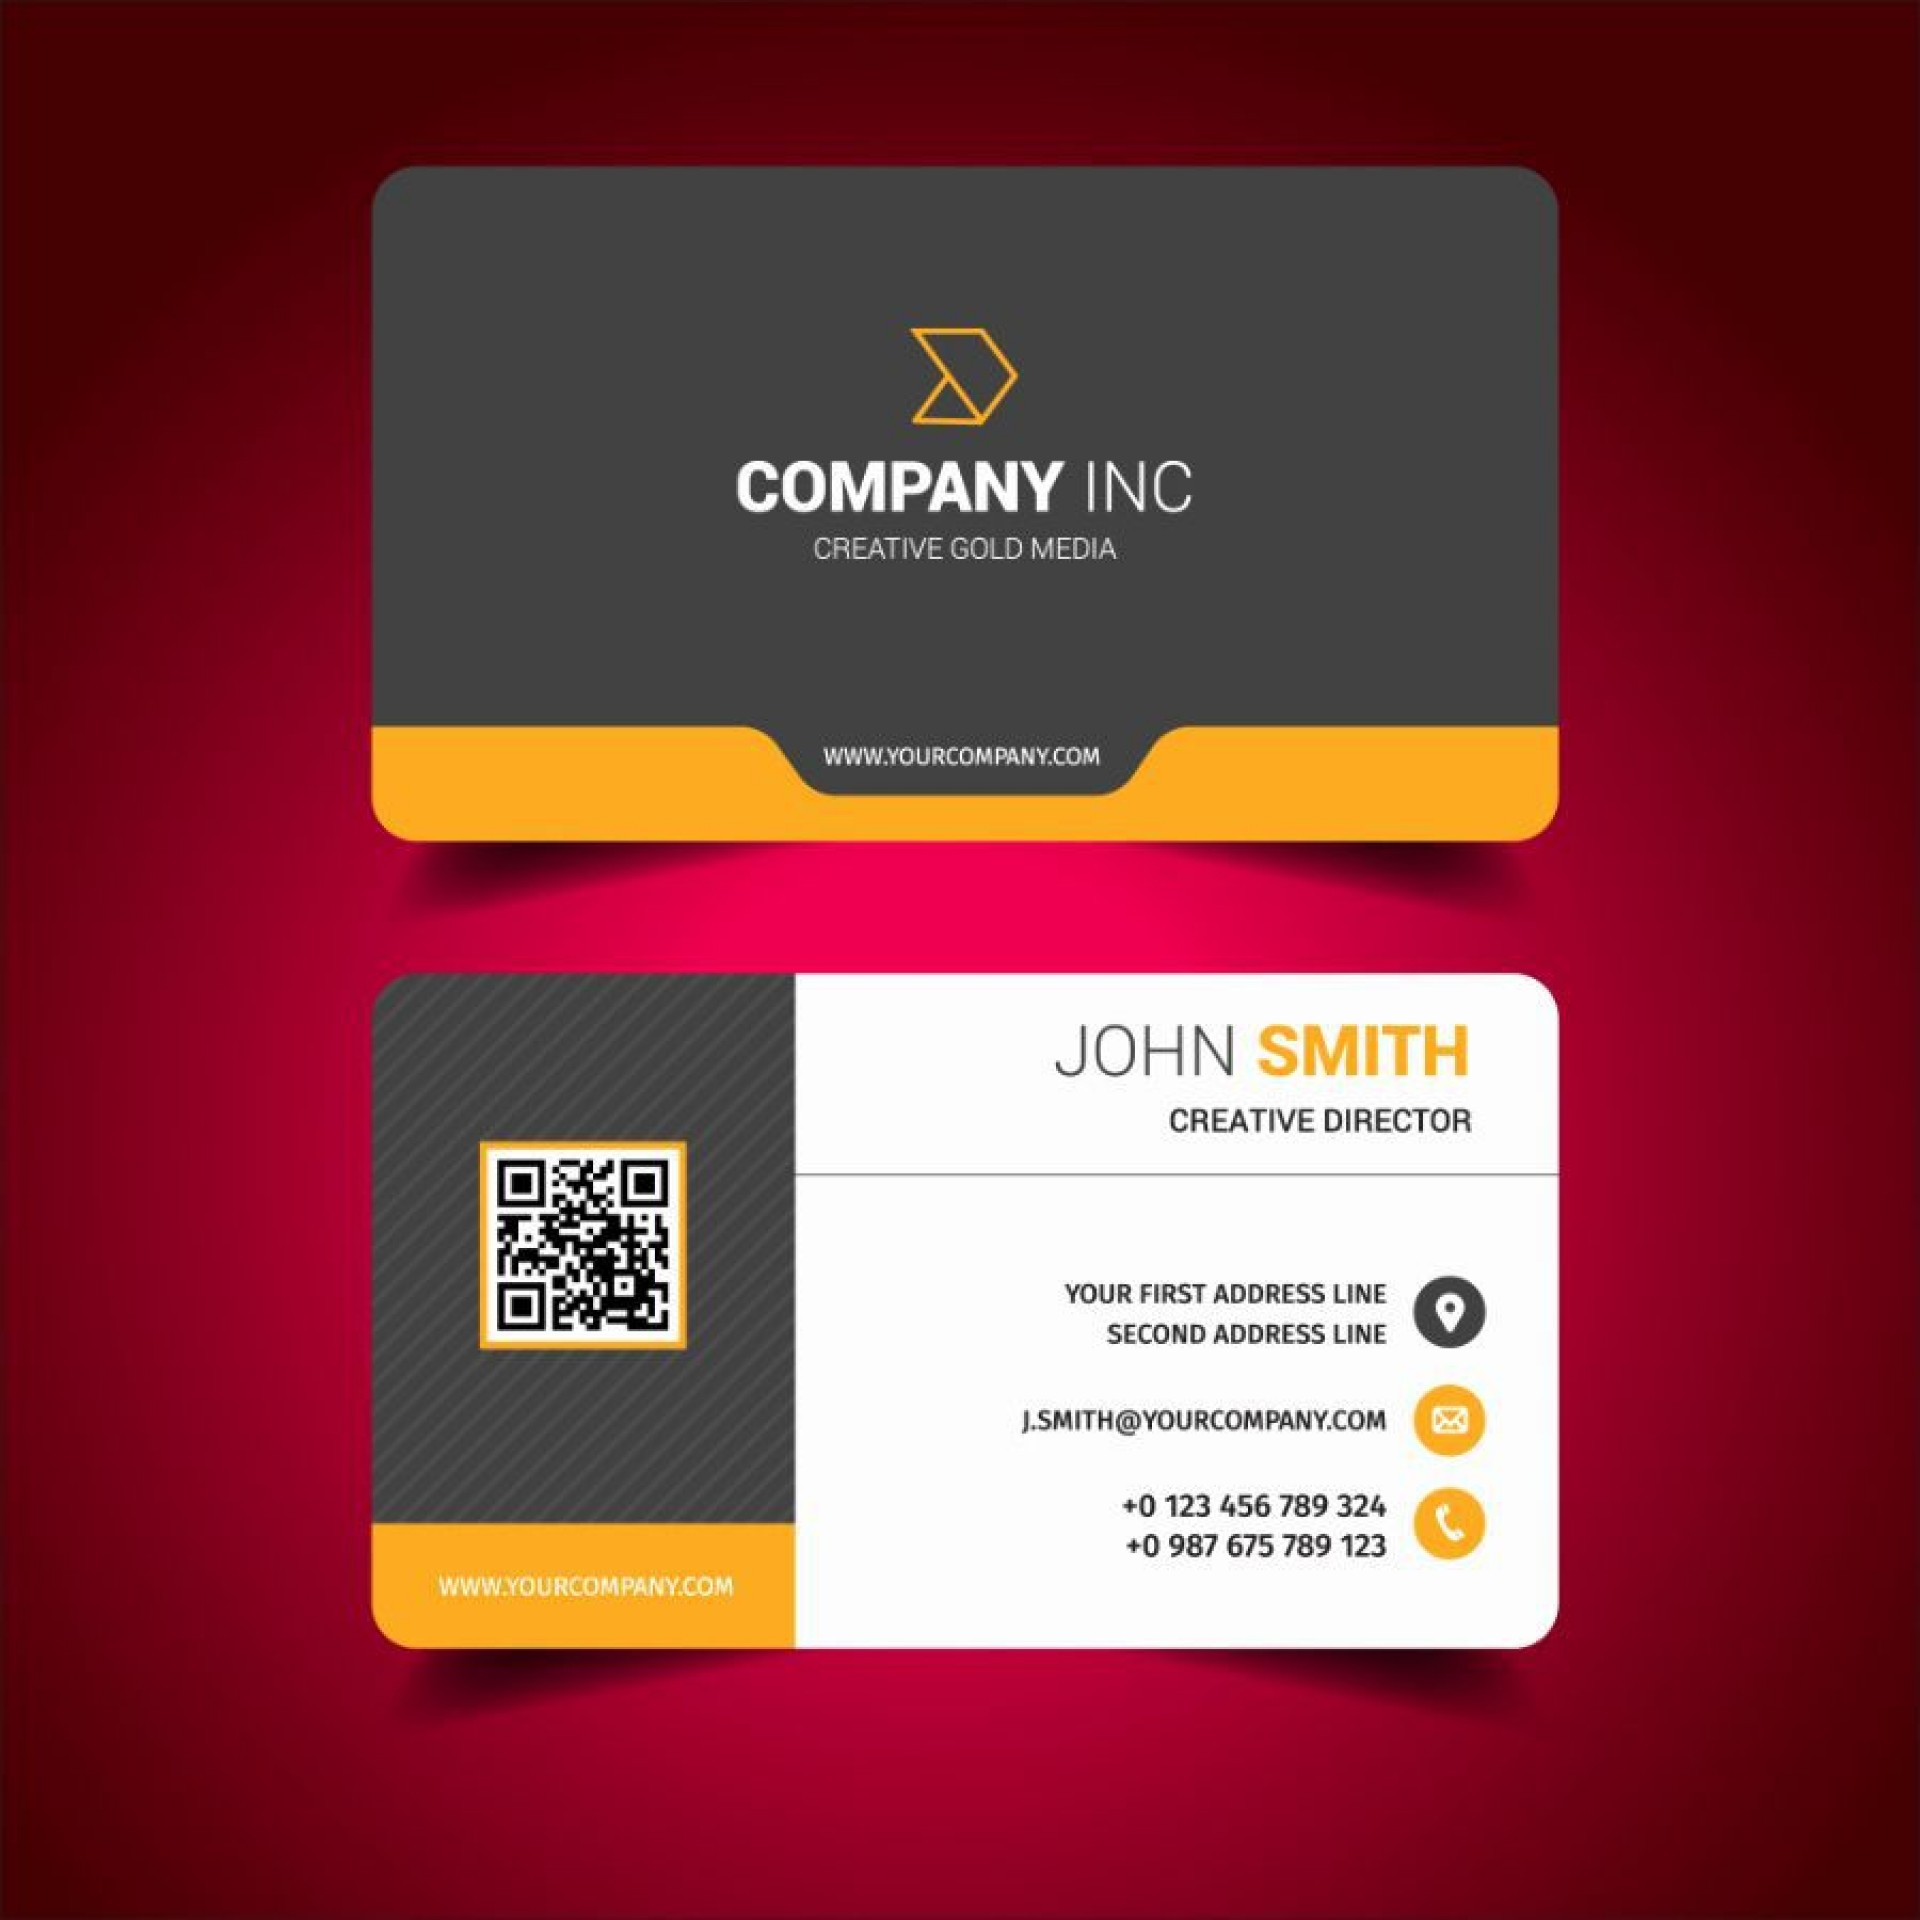 001 Exceptional Download Busines Card Template Concept  Free For Illustrator Visiting Layout Word 20101920